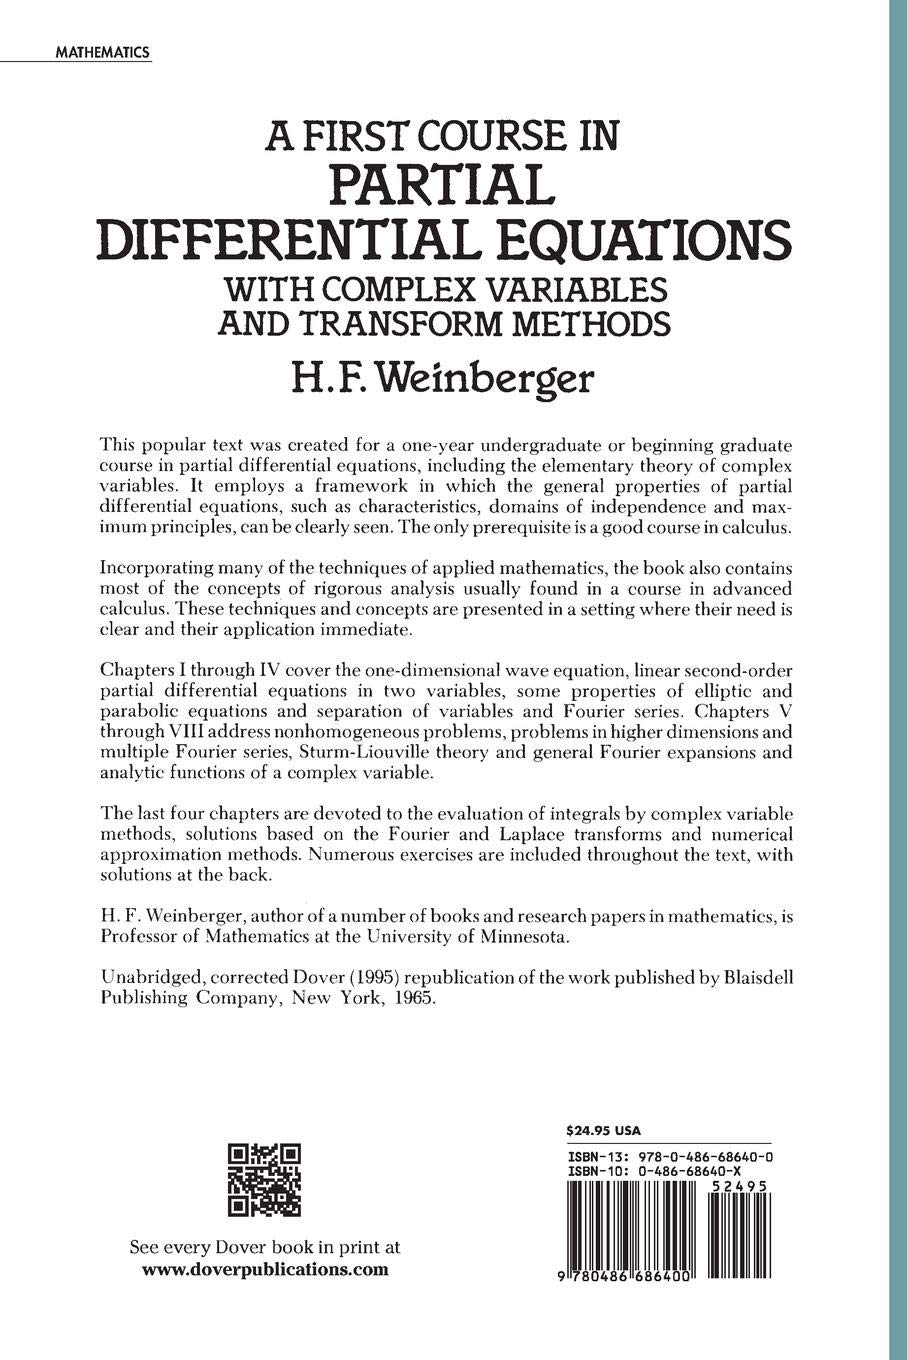 Buy A First Course in Partial Differential Equations with Complex